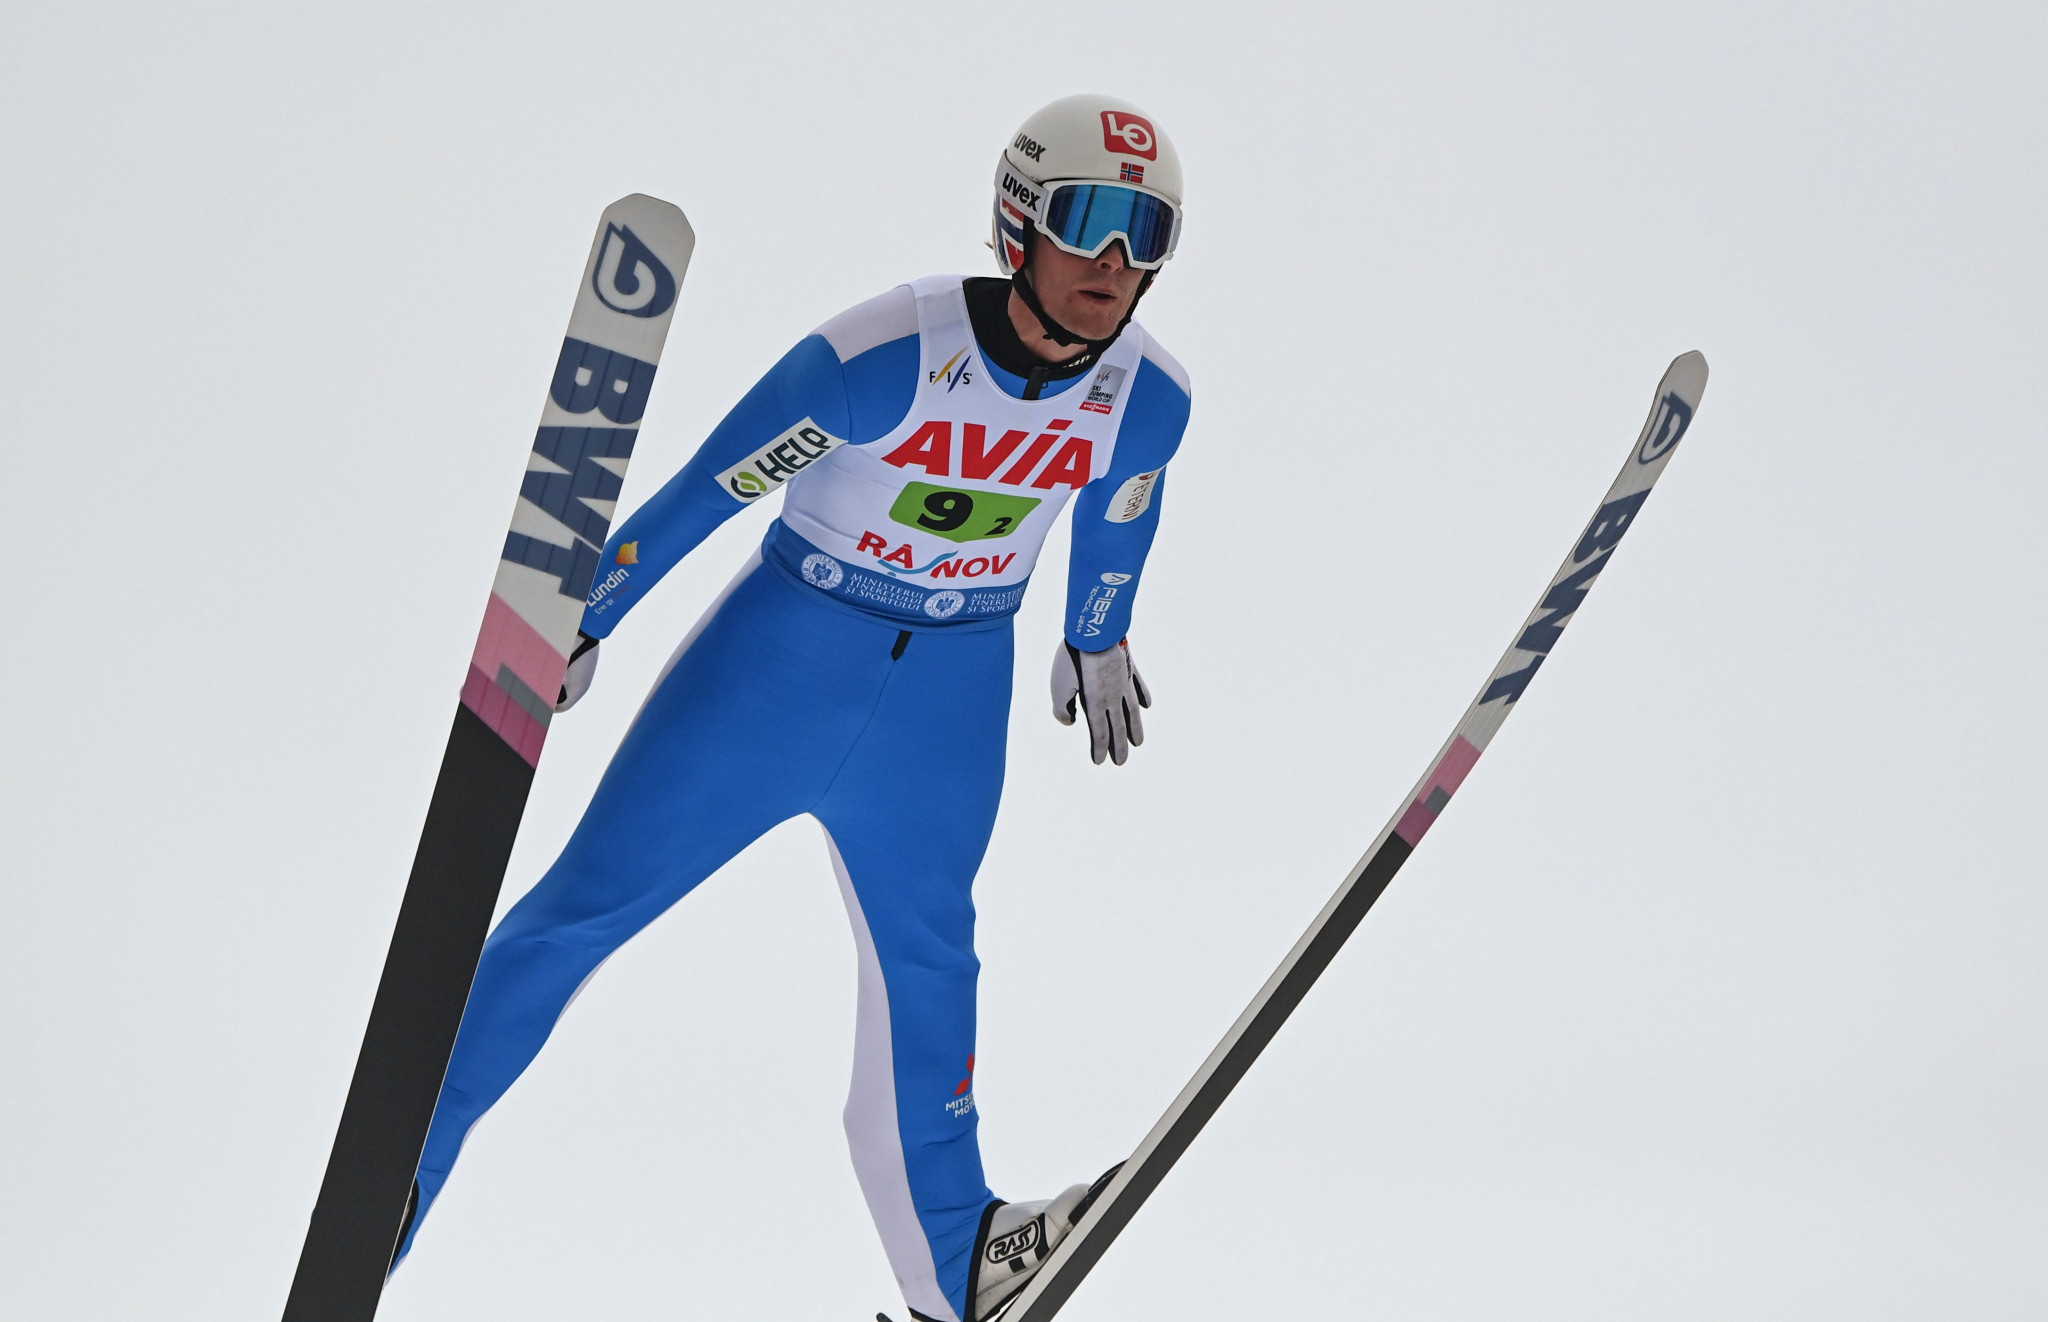 Tande wakes from medically induced coma after fall at Ski Jumping World Cup in Planica